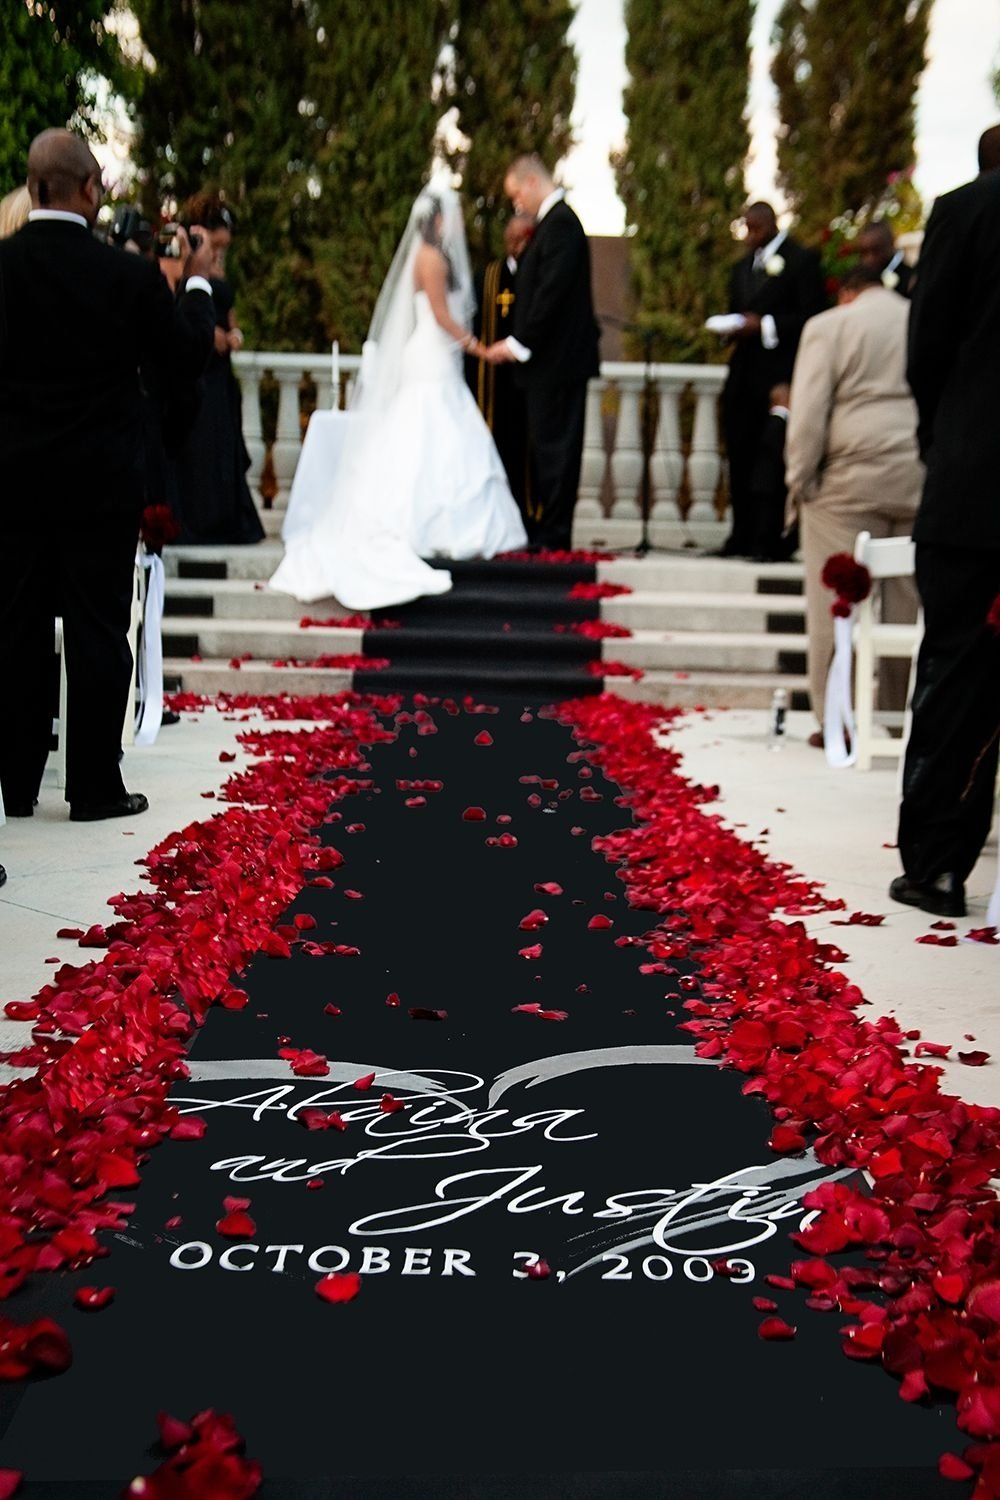 10 Ideal Black Red And White Wedding Ideas black and red wedding ideas wedding ideas pinterest red 5